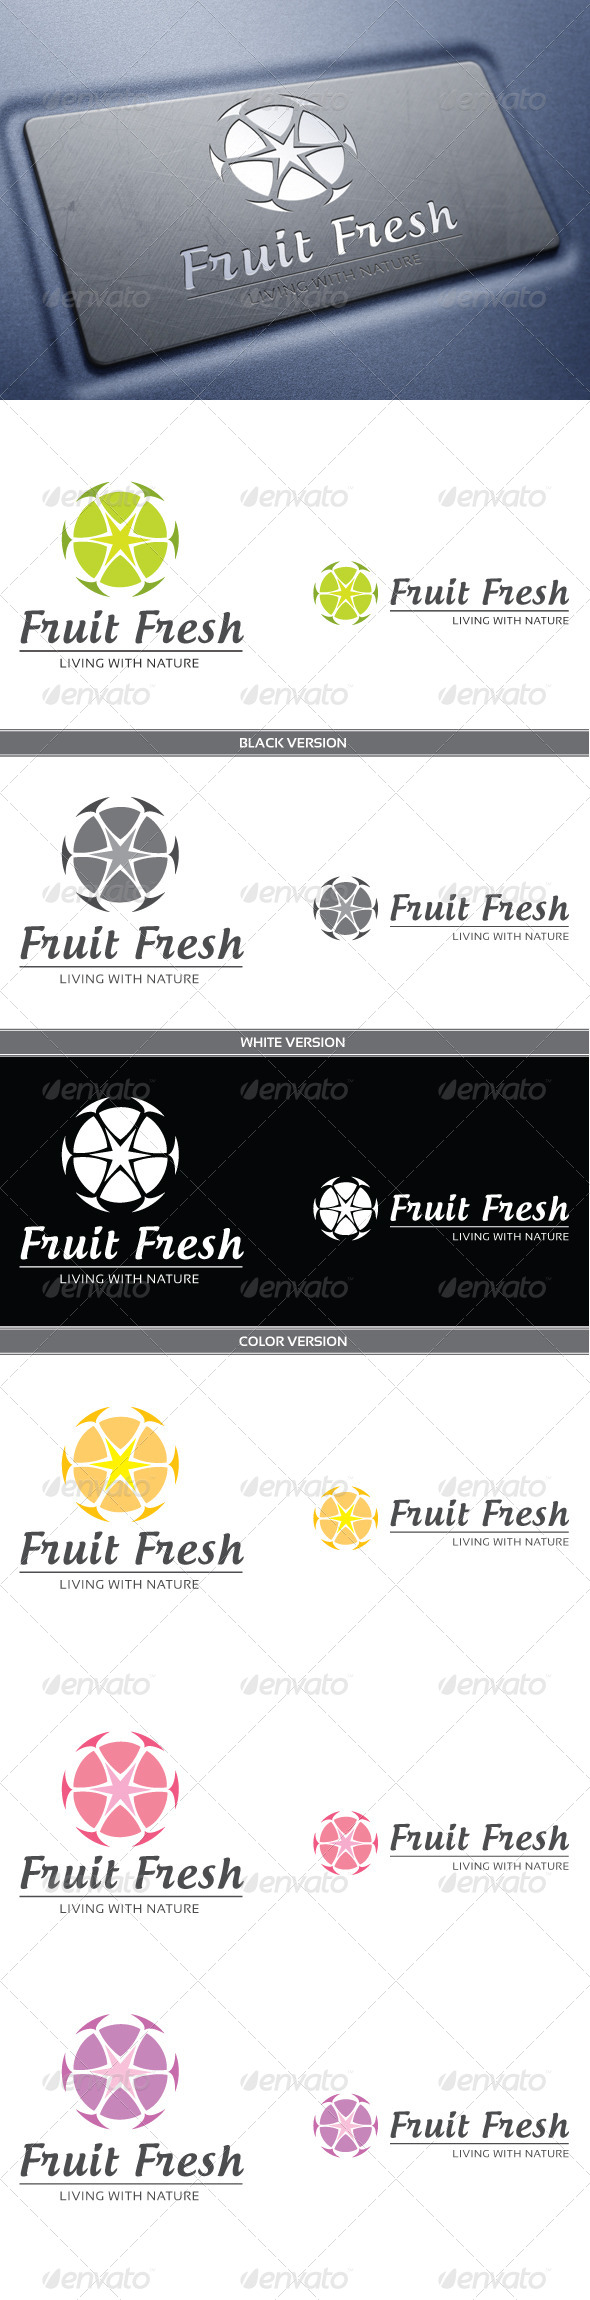 Fruit Fresh - Nature Logo Templates